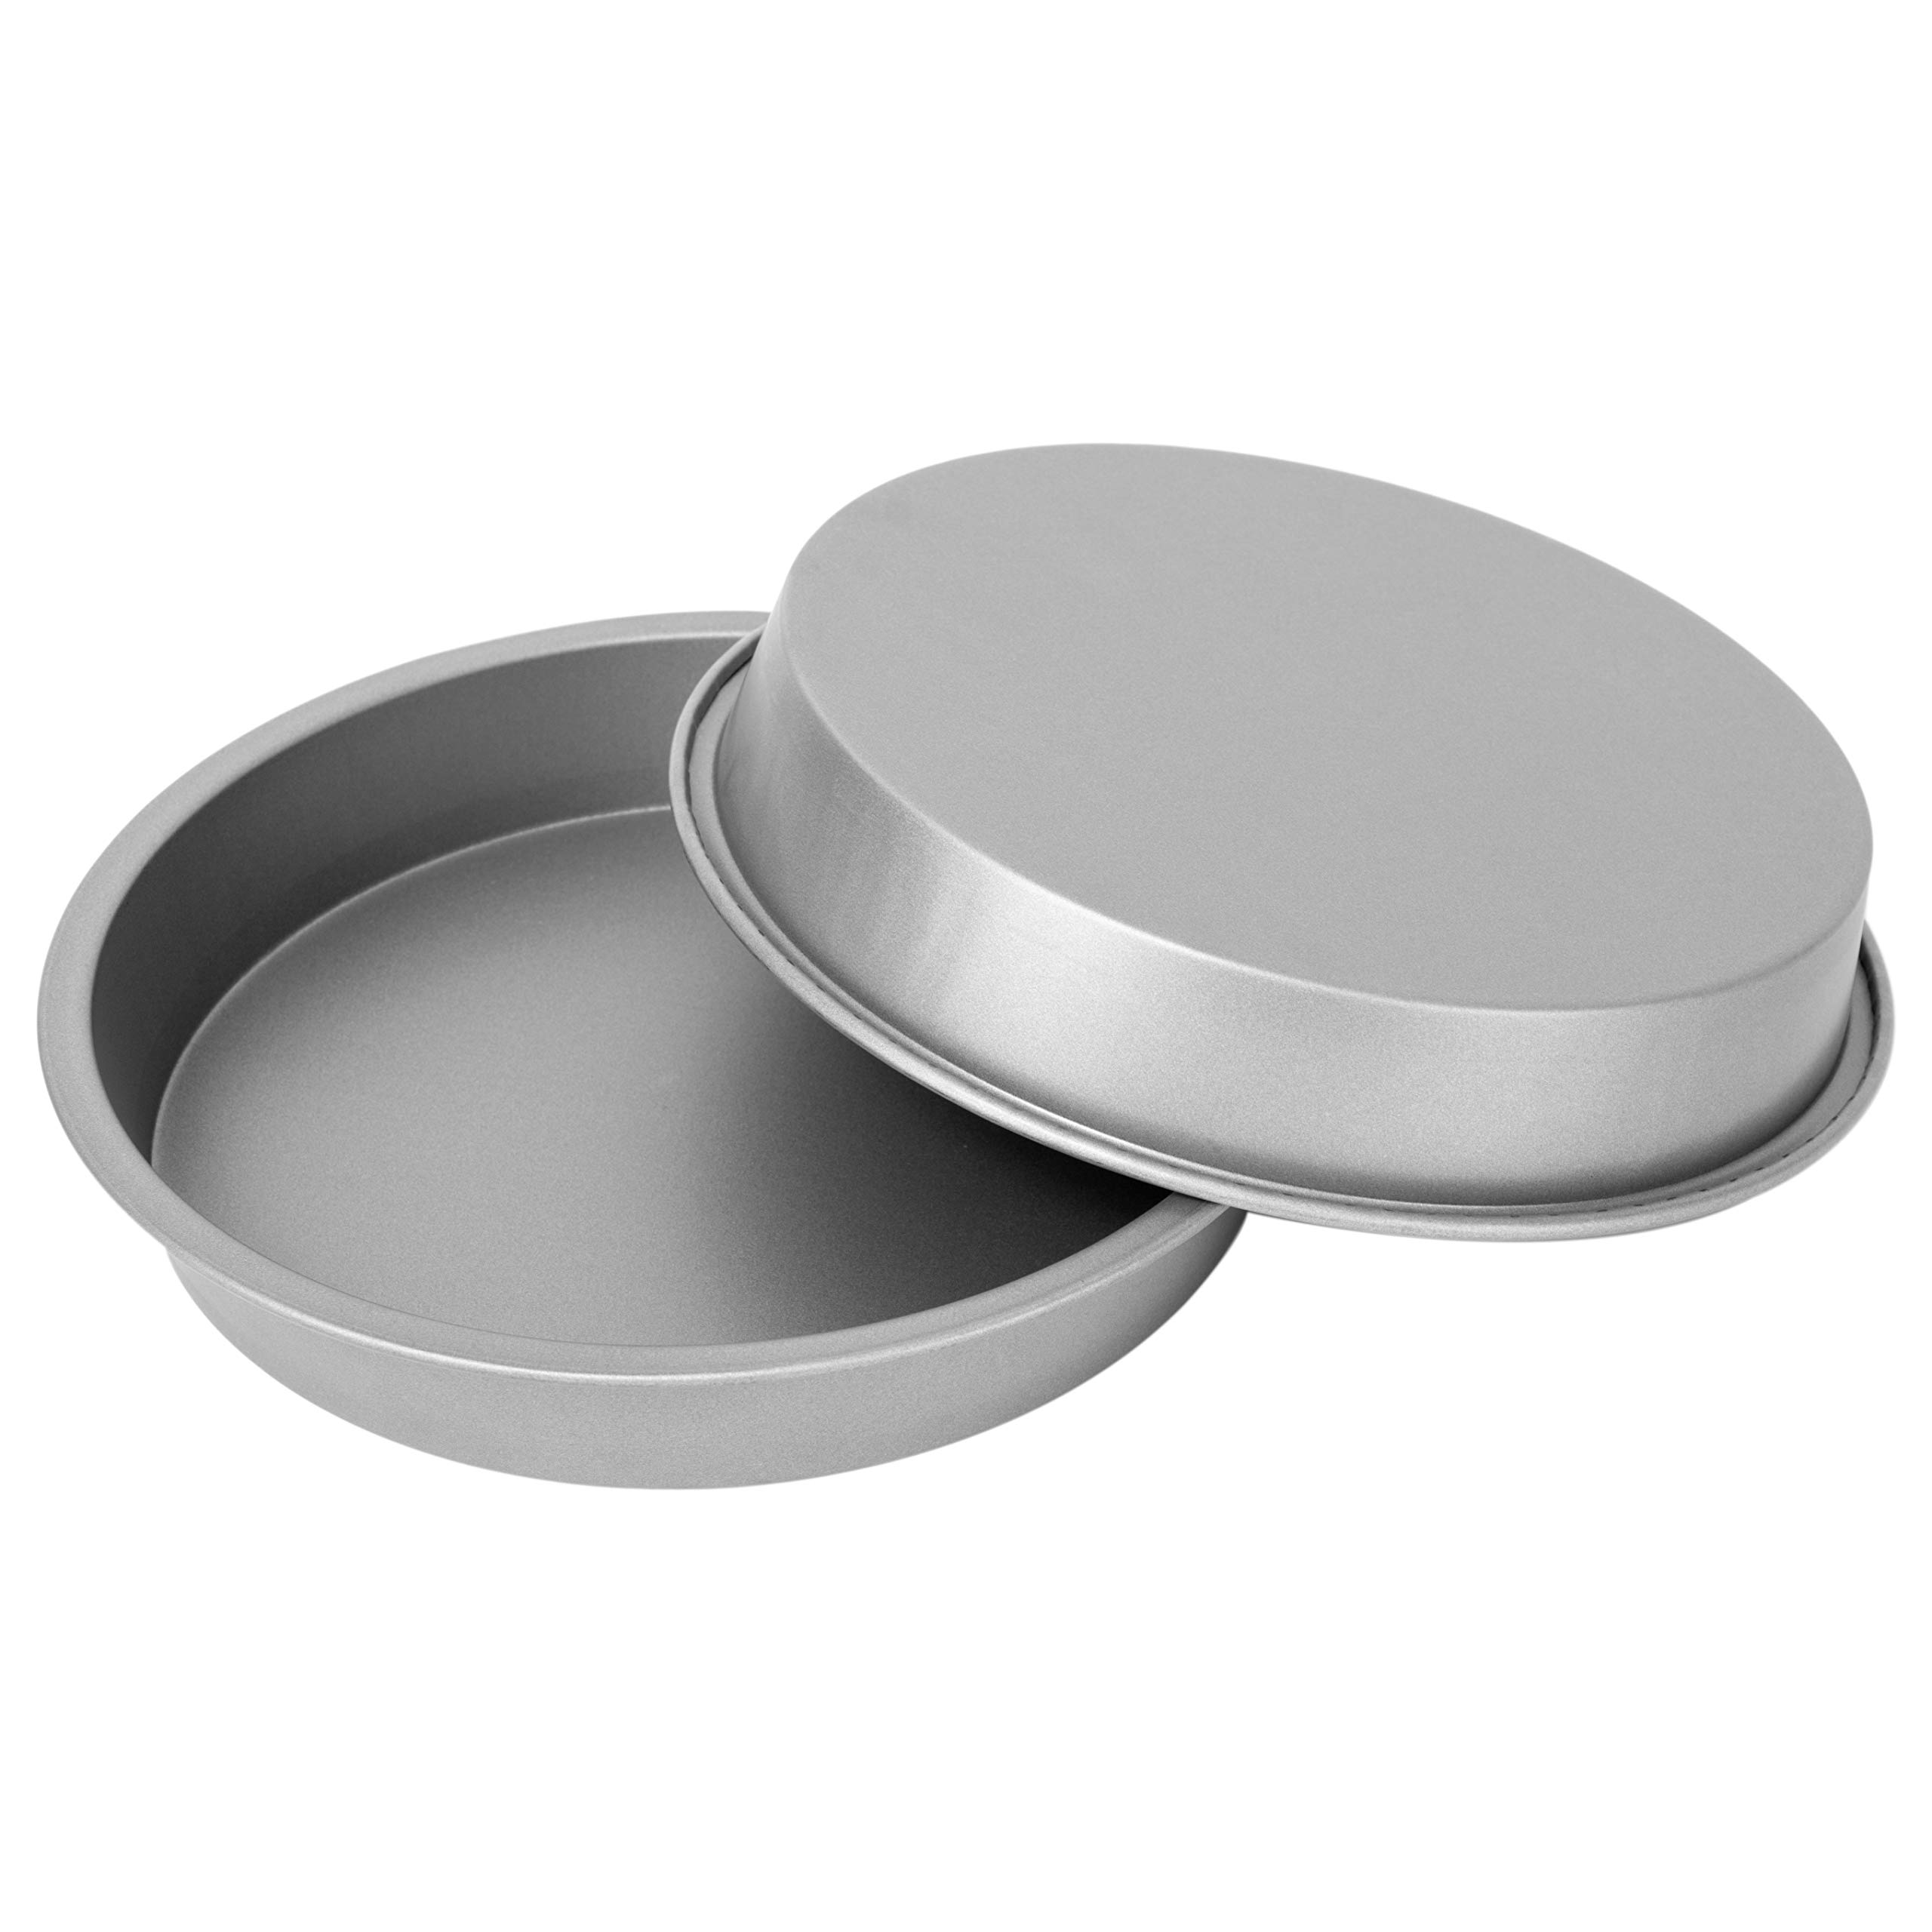 "G & S Metal Products Company OvenStuff Nonstick Round Cake Baking Pan 2 Piece Set, 9"", Gray"